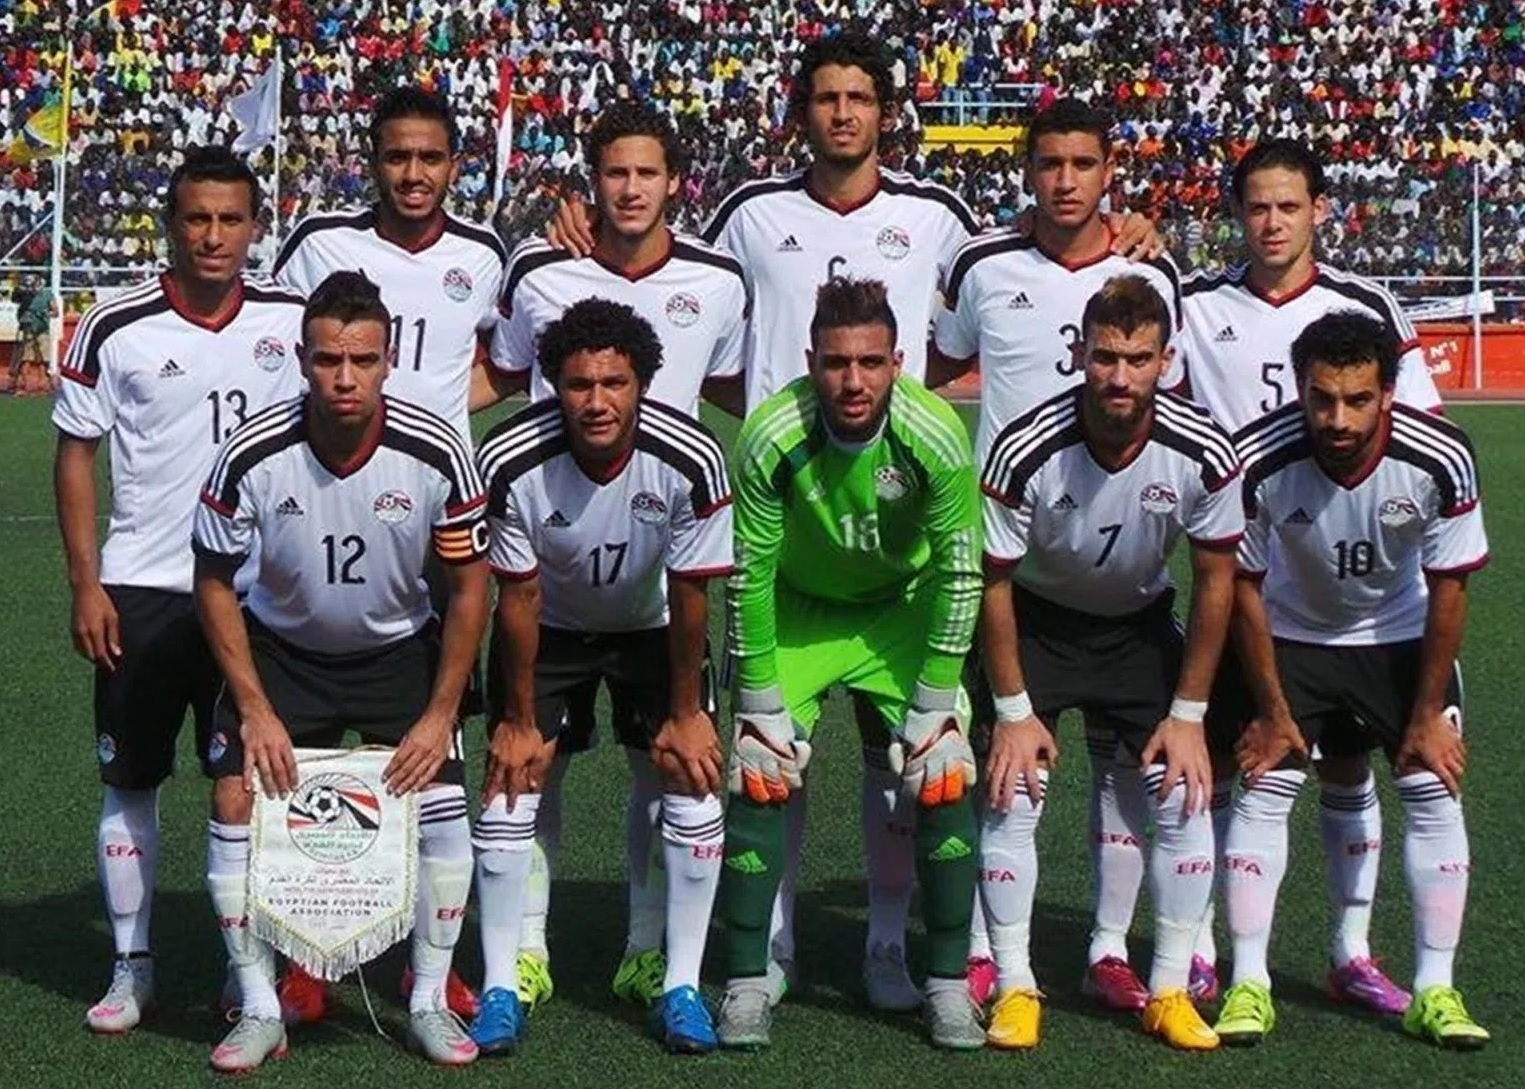 Egypt-2017-adidas-away-kit-white-black-white-line-up.jpg